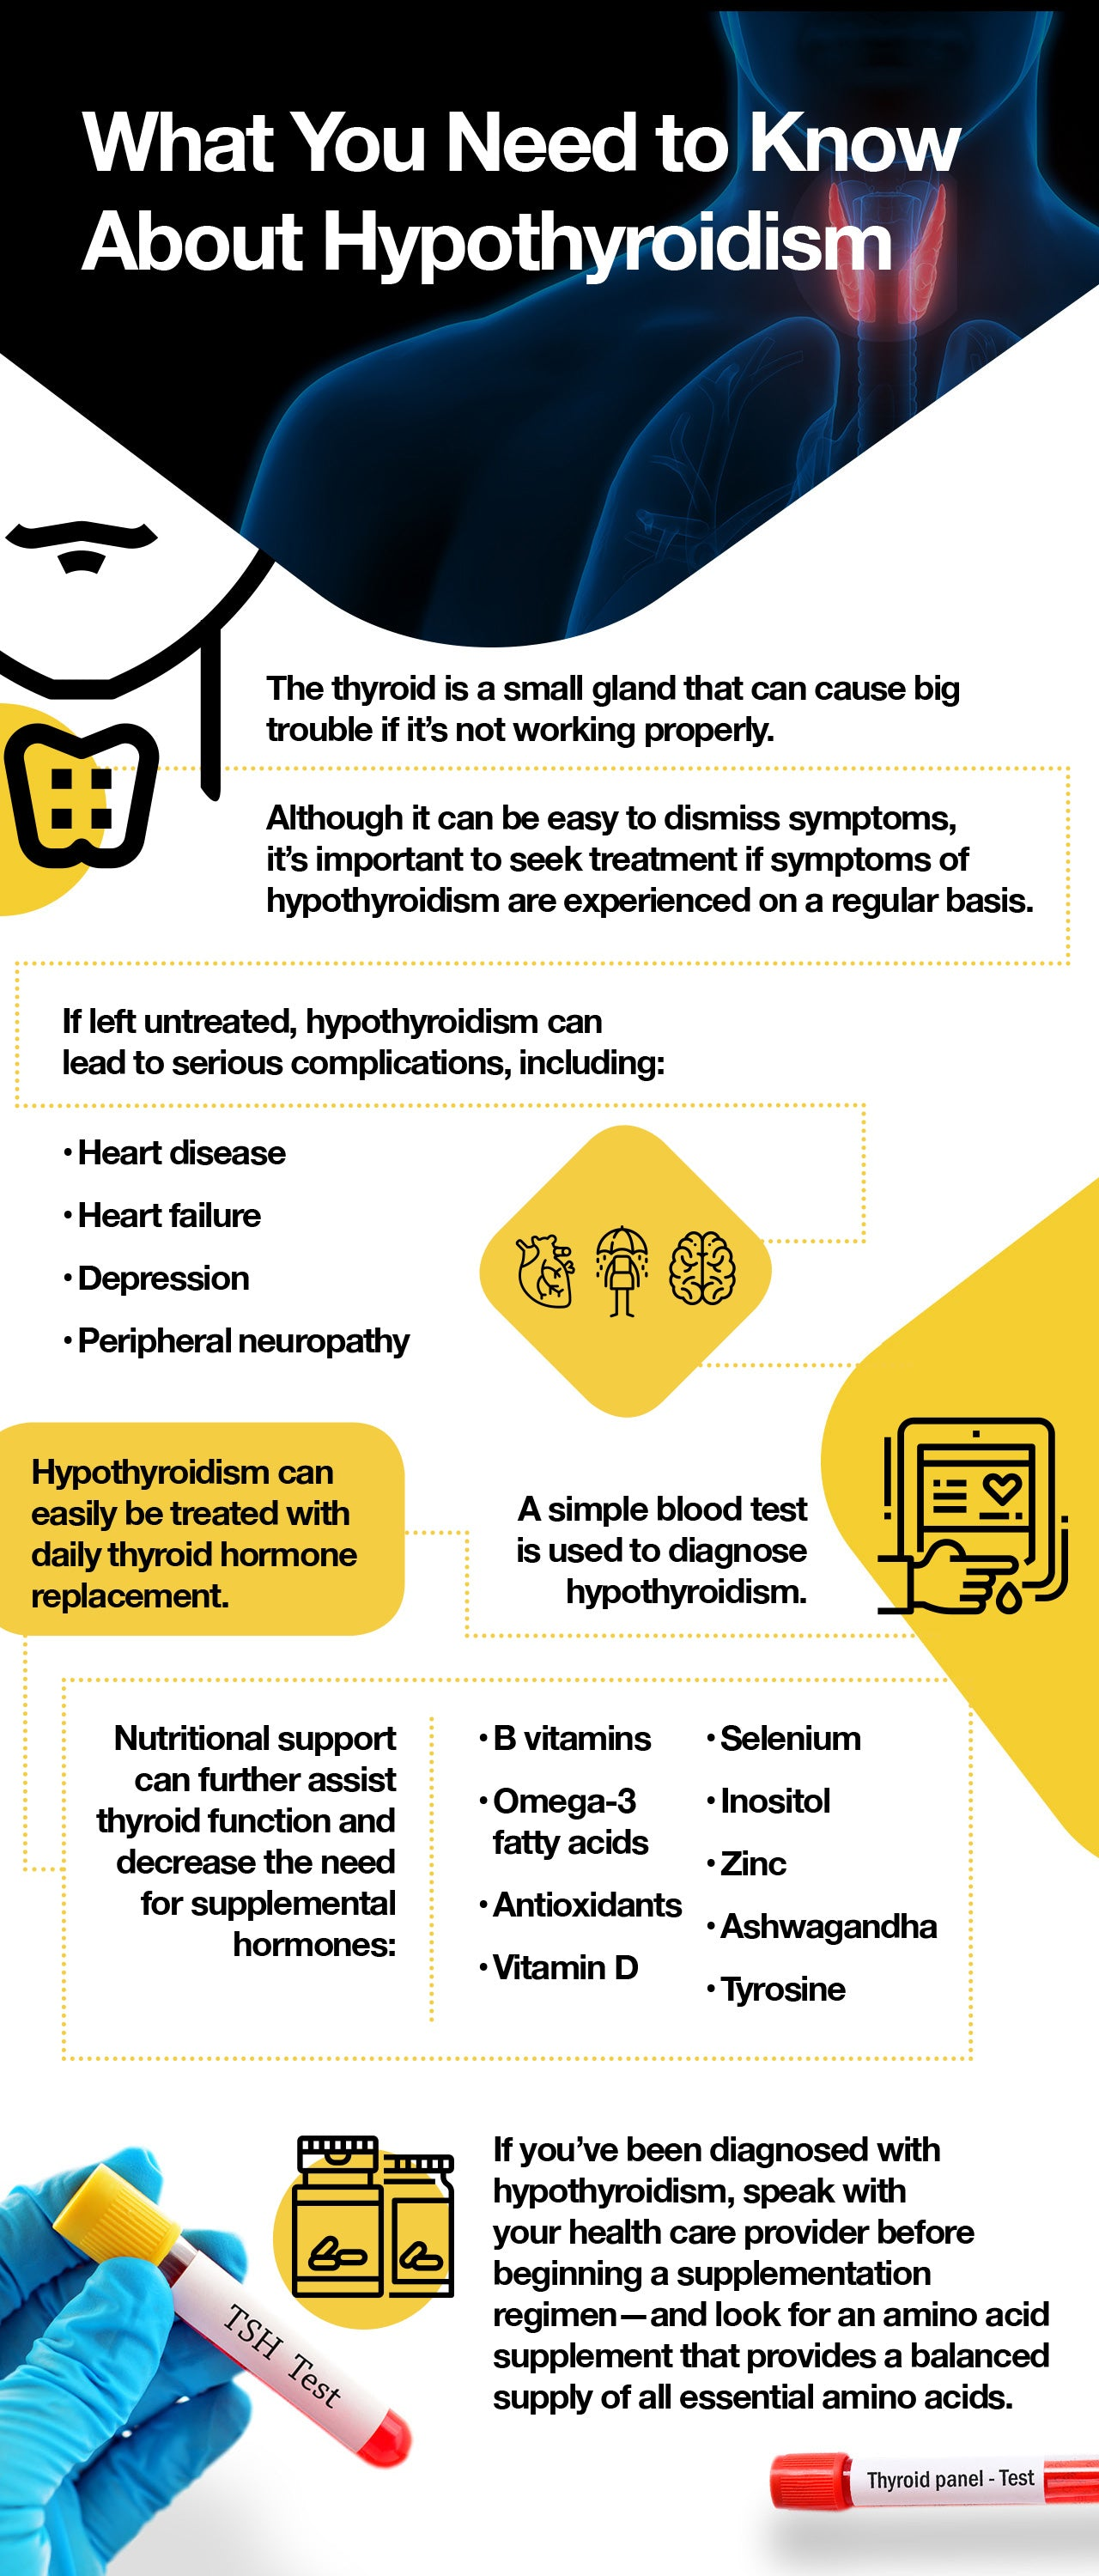 What to know about hypothyroidism